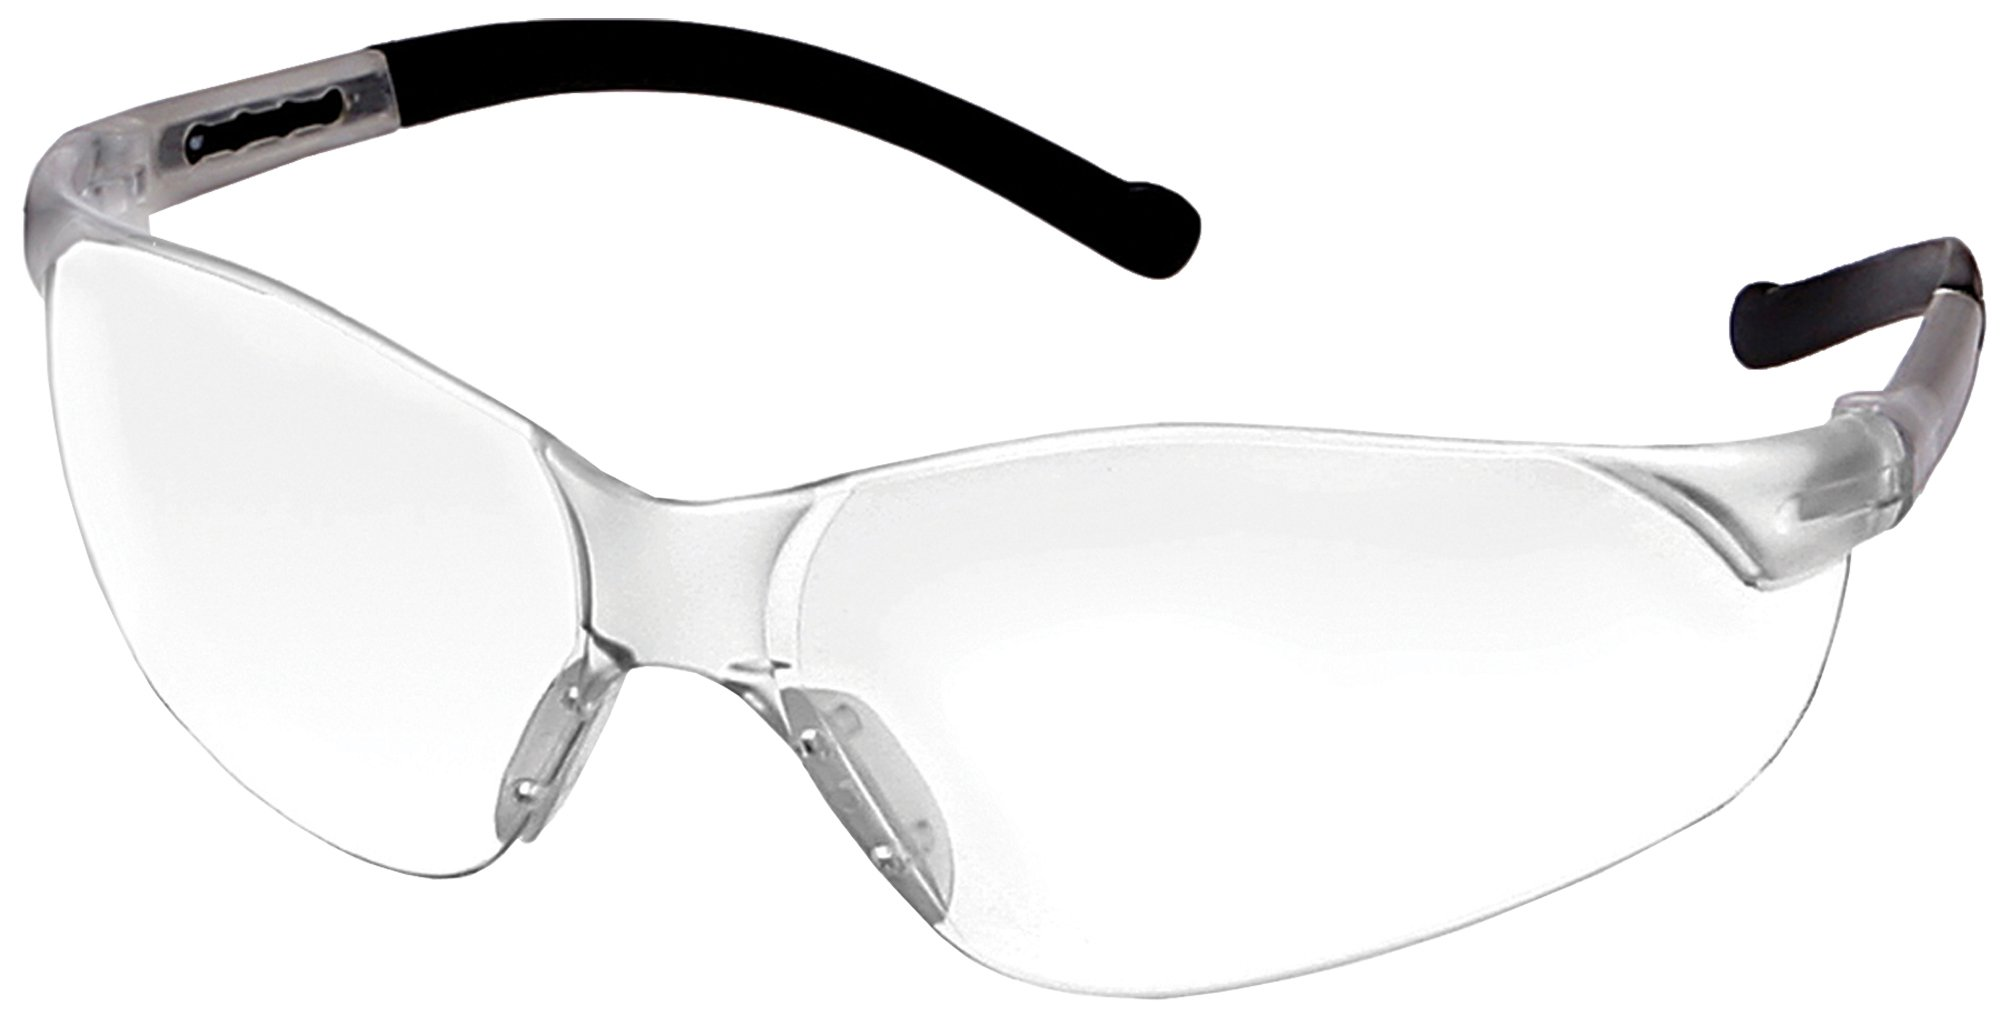 ERB 17058-12 Inhibitor NXT Safety Glasses with Clear Temples & Clear Anti-Fog Lens (12-Pack)